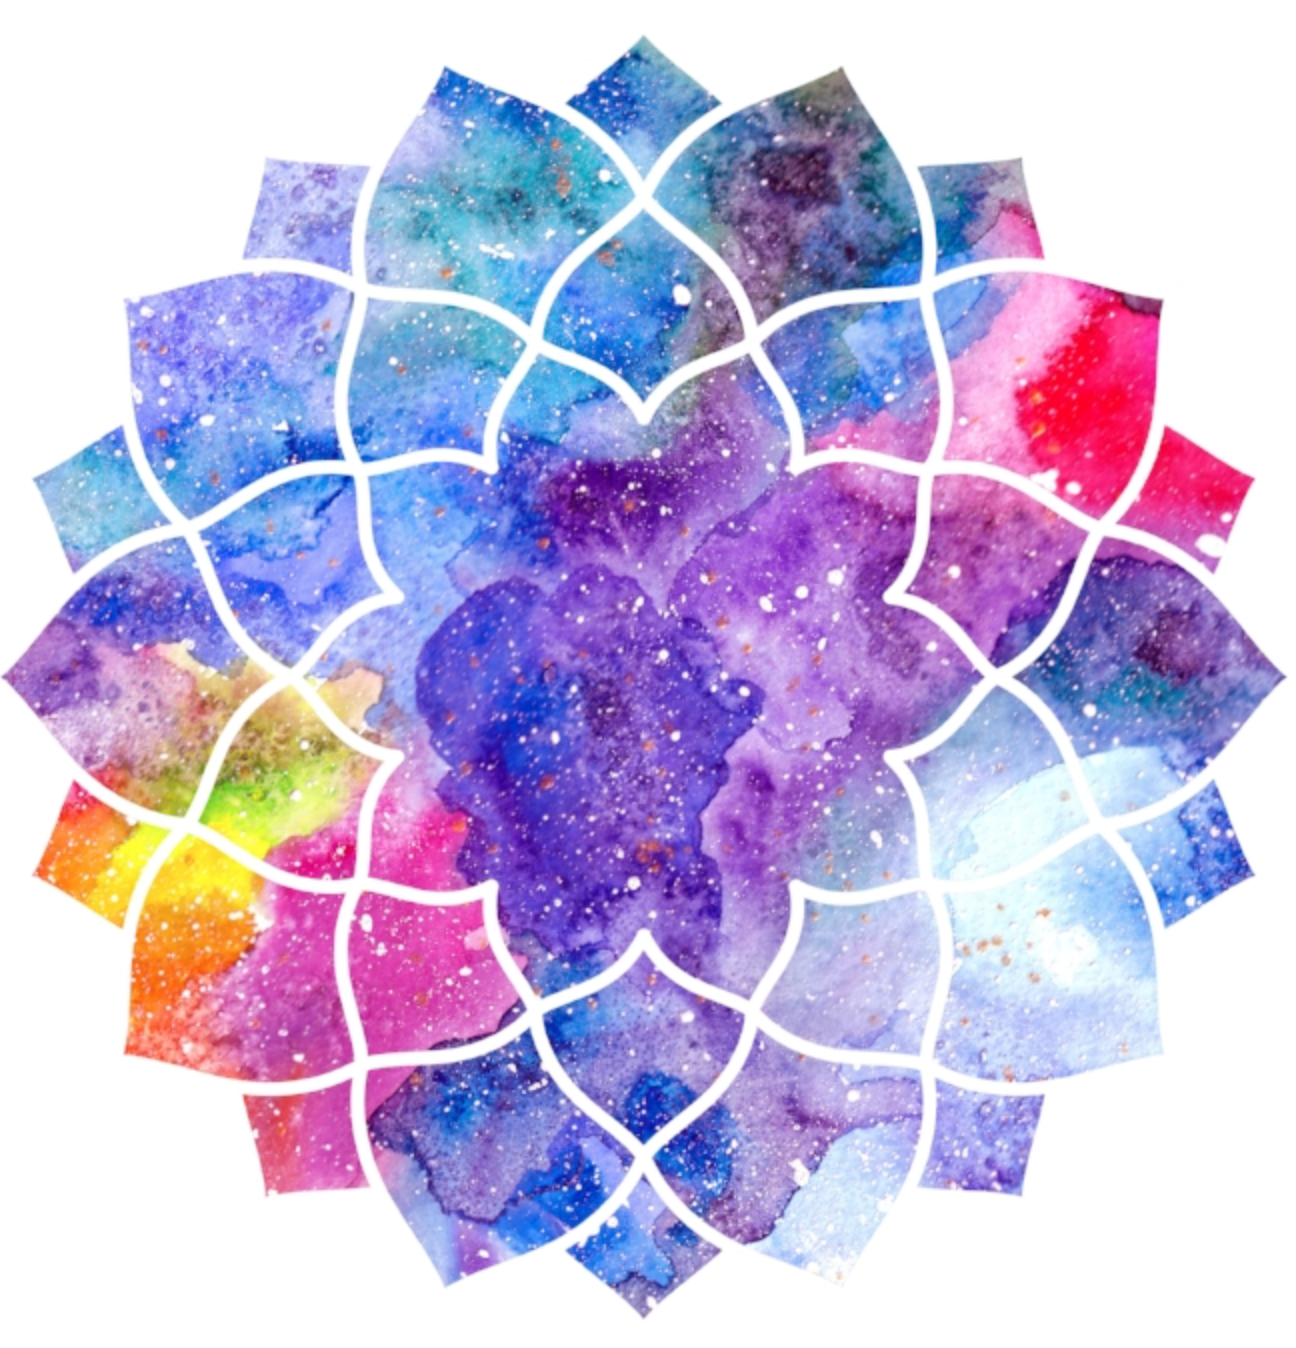 Chakra Healing Circle & Sound Bath - Yoga Workshops